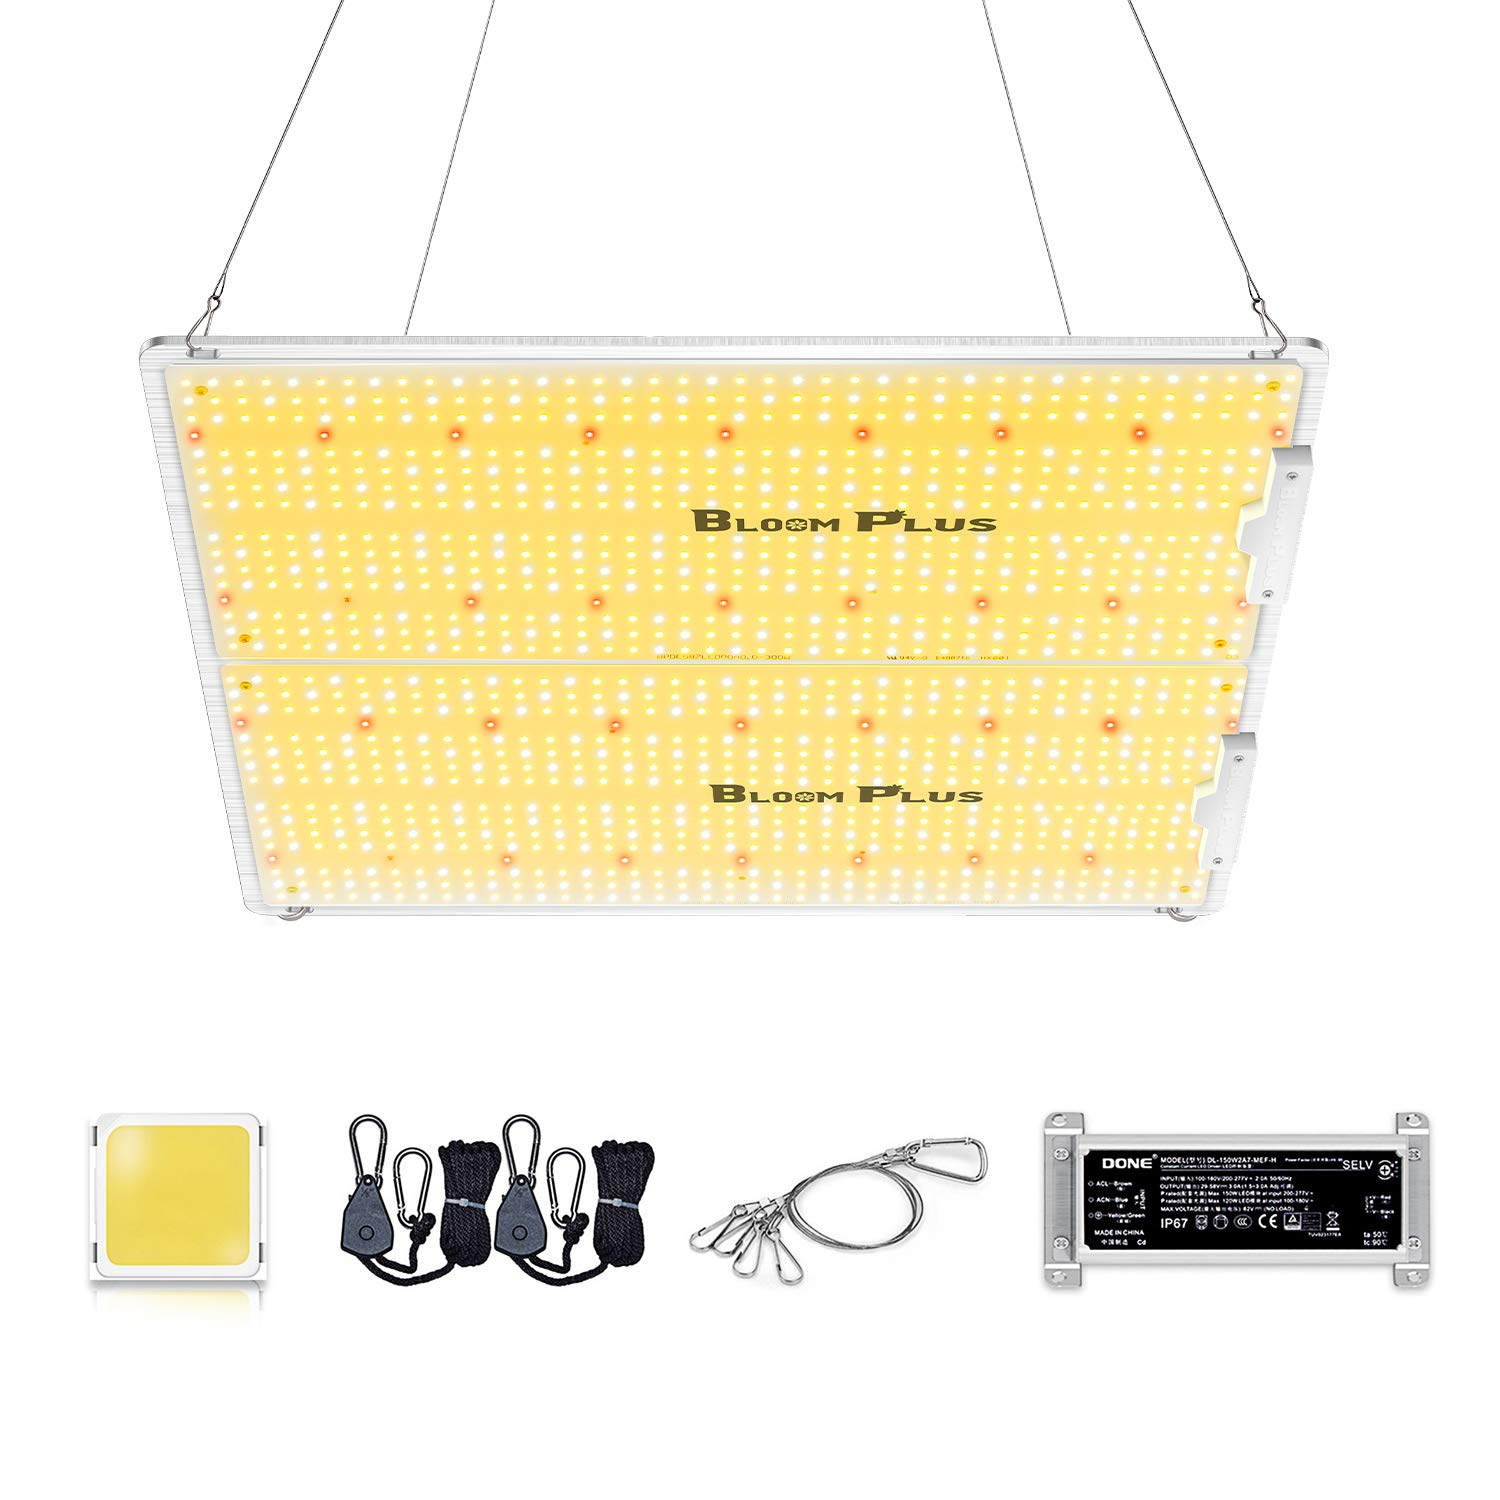 Bloom Plus LED Grow Light BP3000 with 1174pcs Samsung Diodes Dimmable Grow Lights 4x4ft Coverage Full Spectrum Newest…